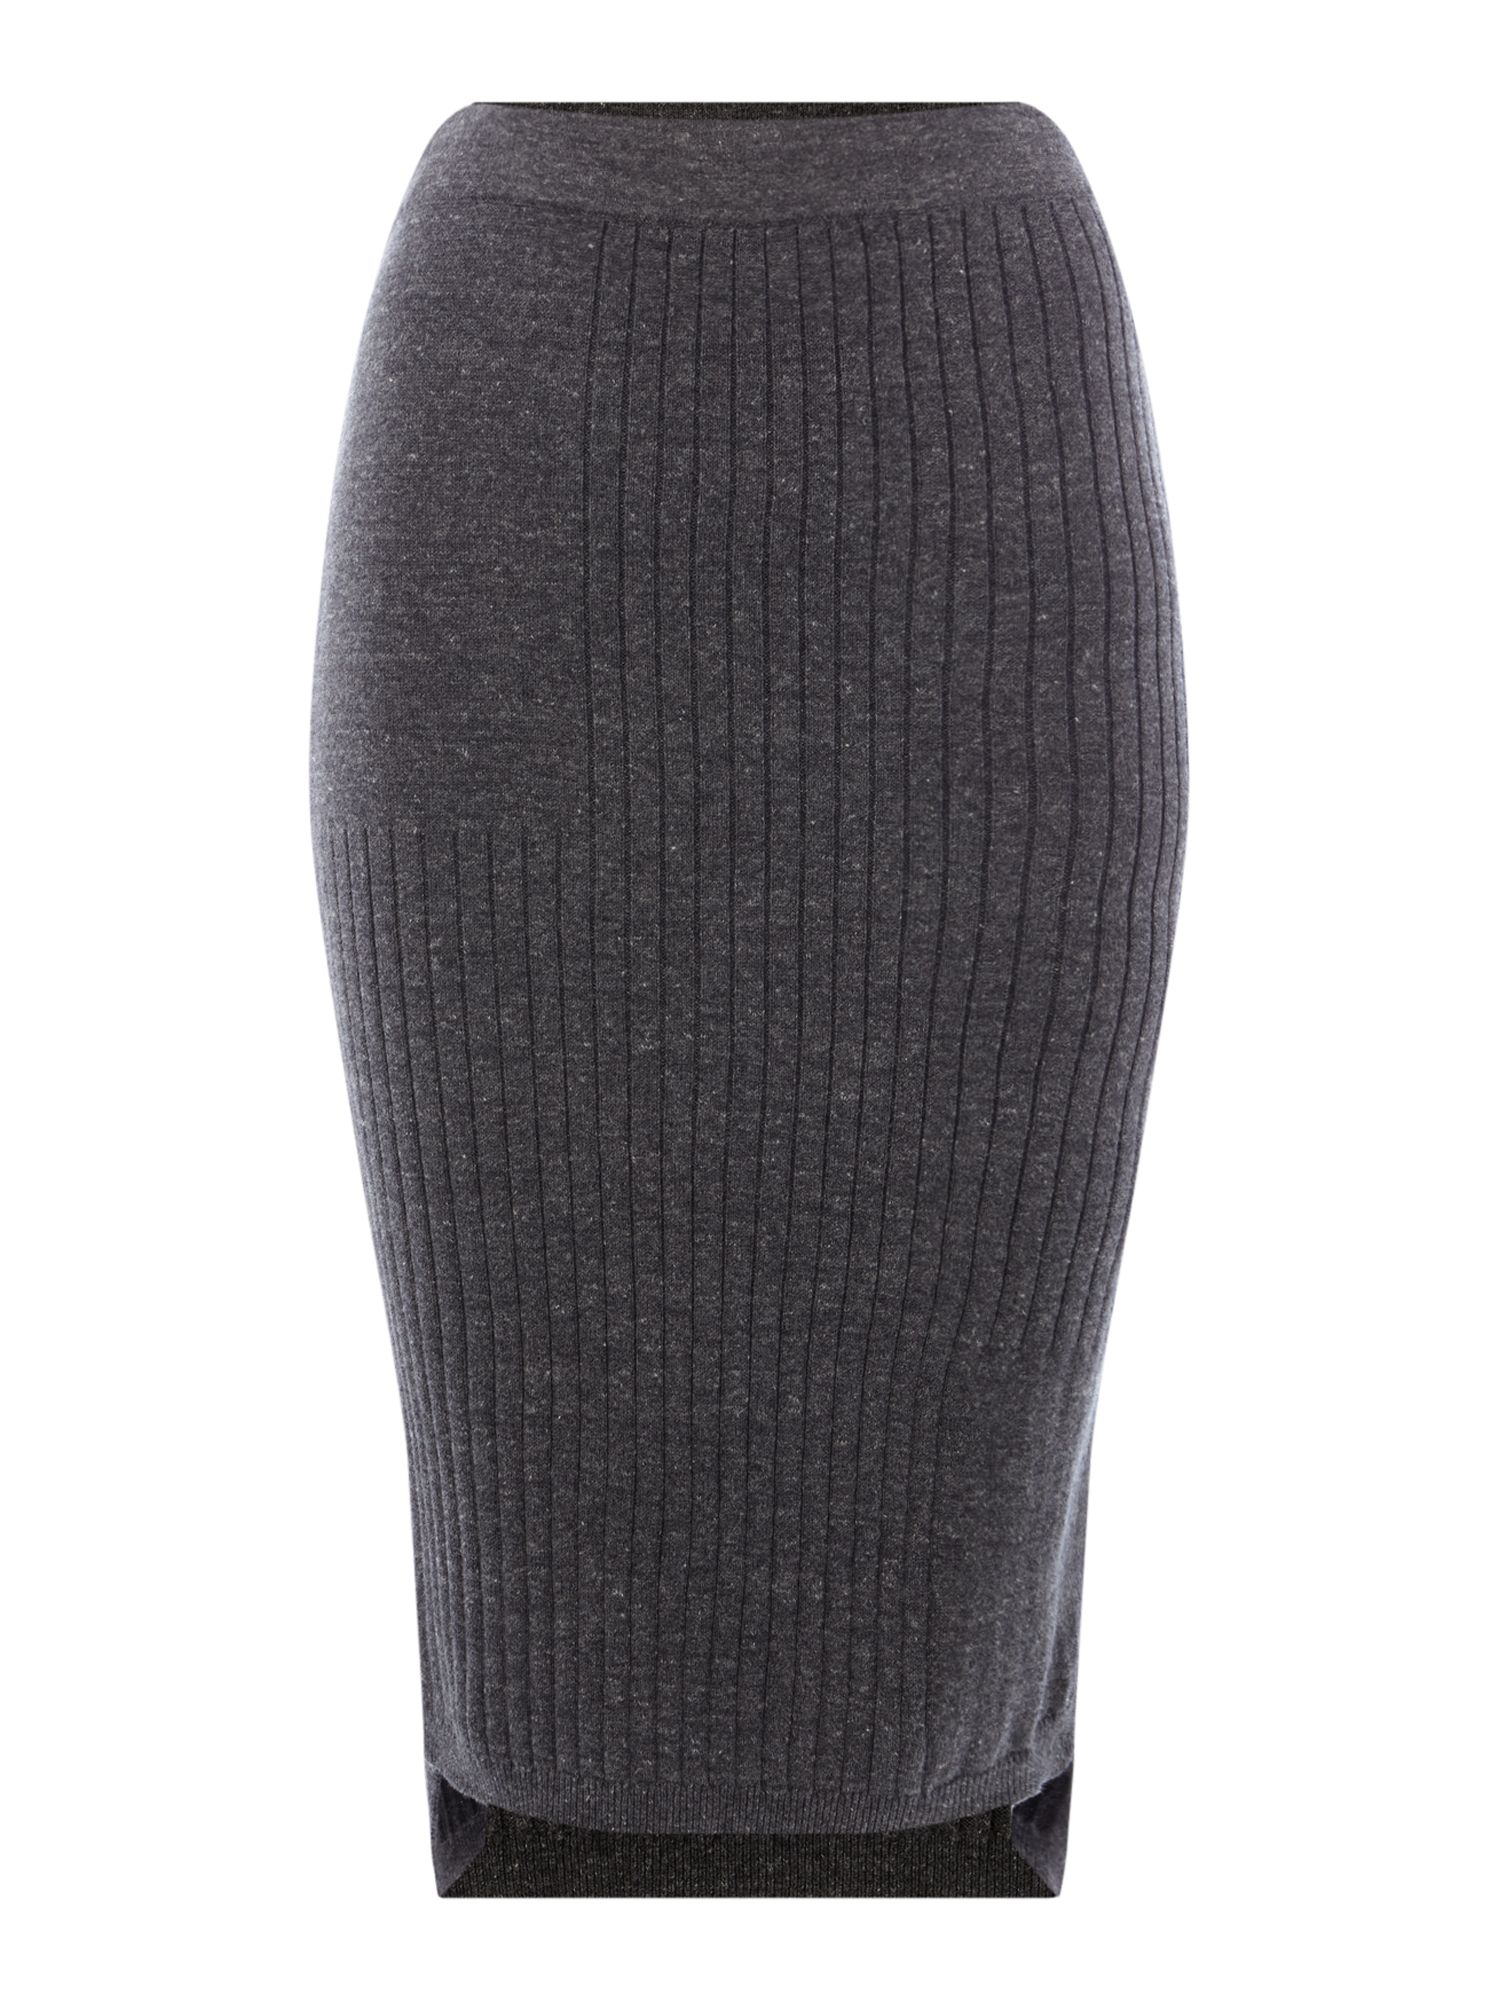 Maison De Nimes Rib Knitted Skirt, Charcoal